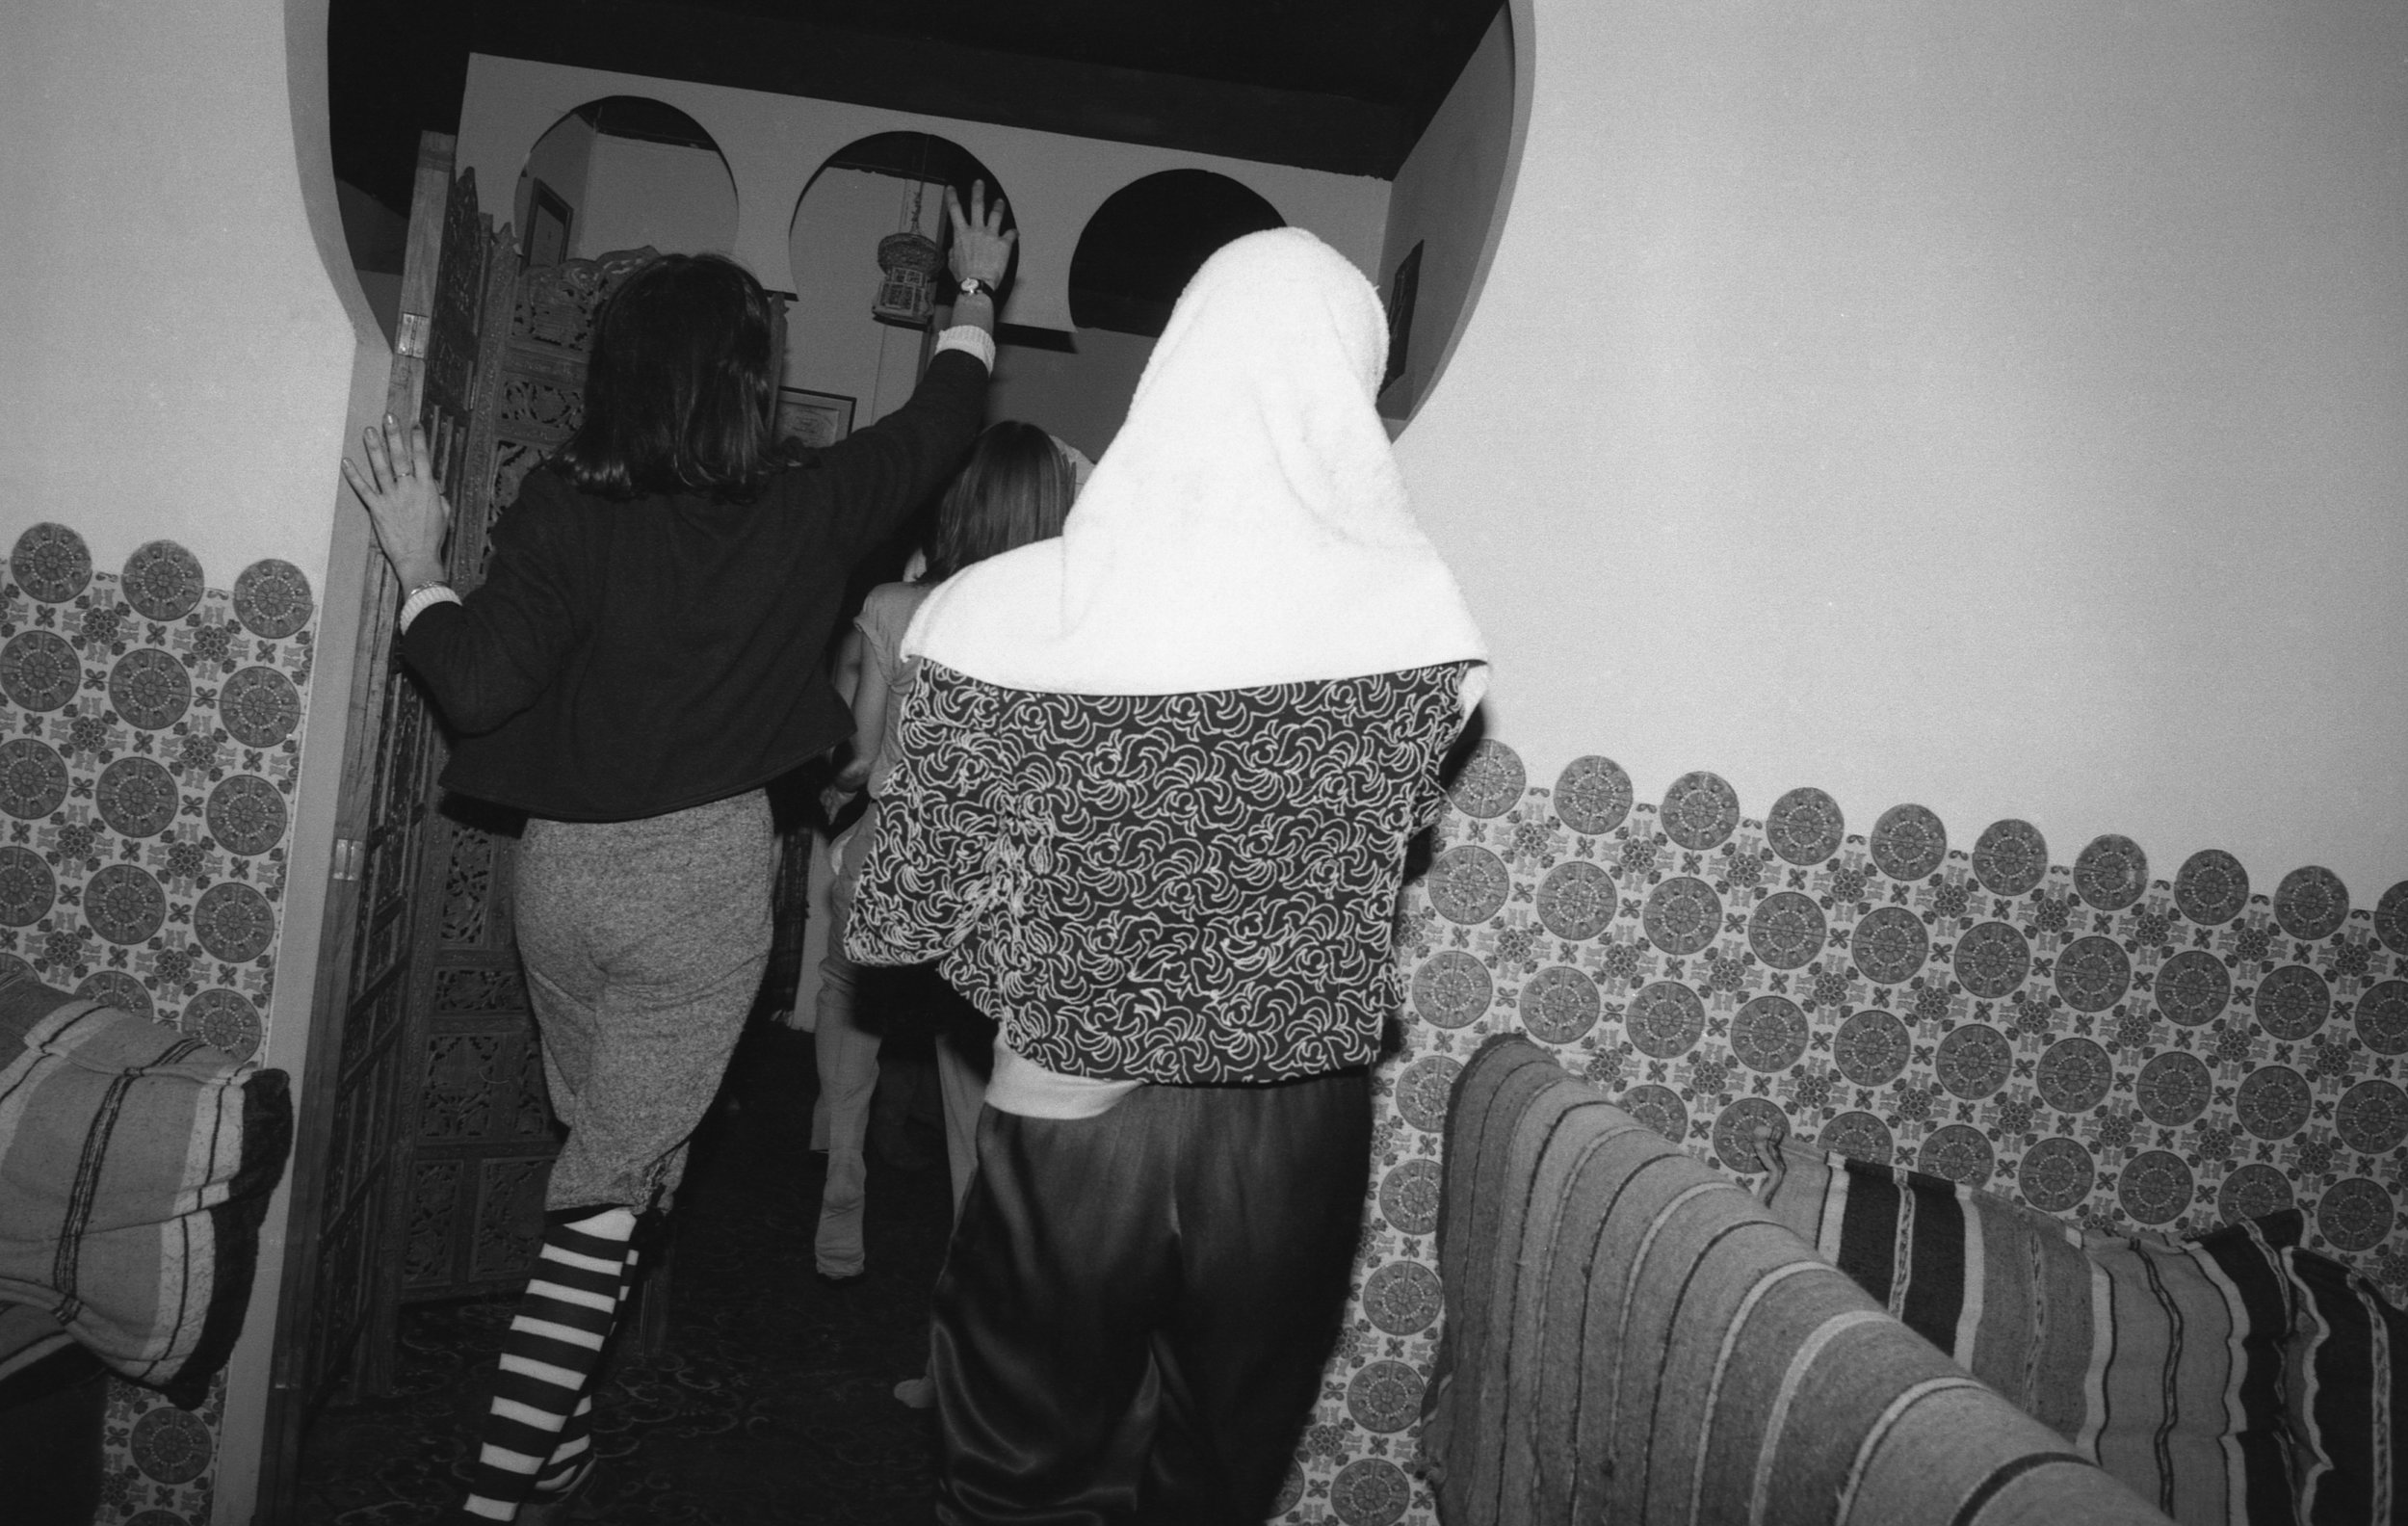 Moroccan Restaurant: Girls' Night Out. Los Angeles, 1981 (17/19)